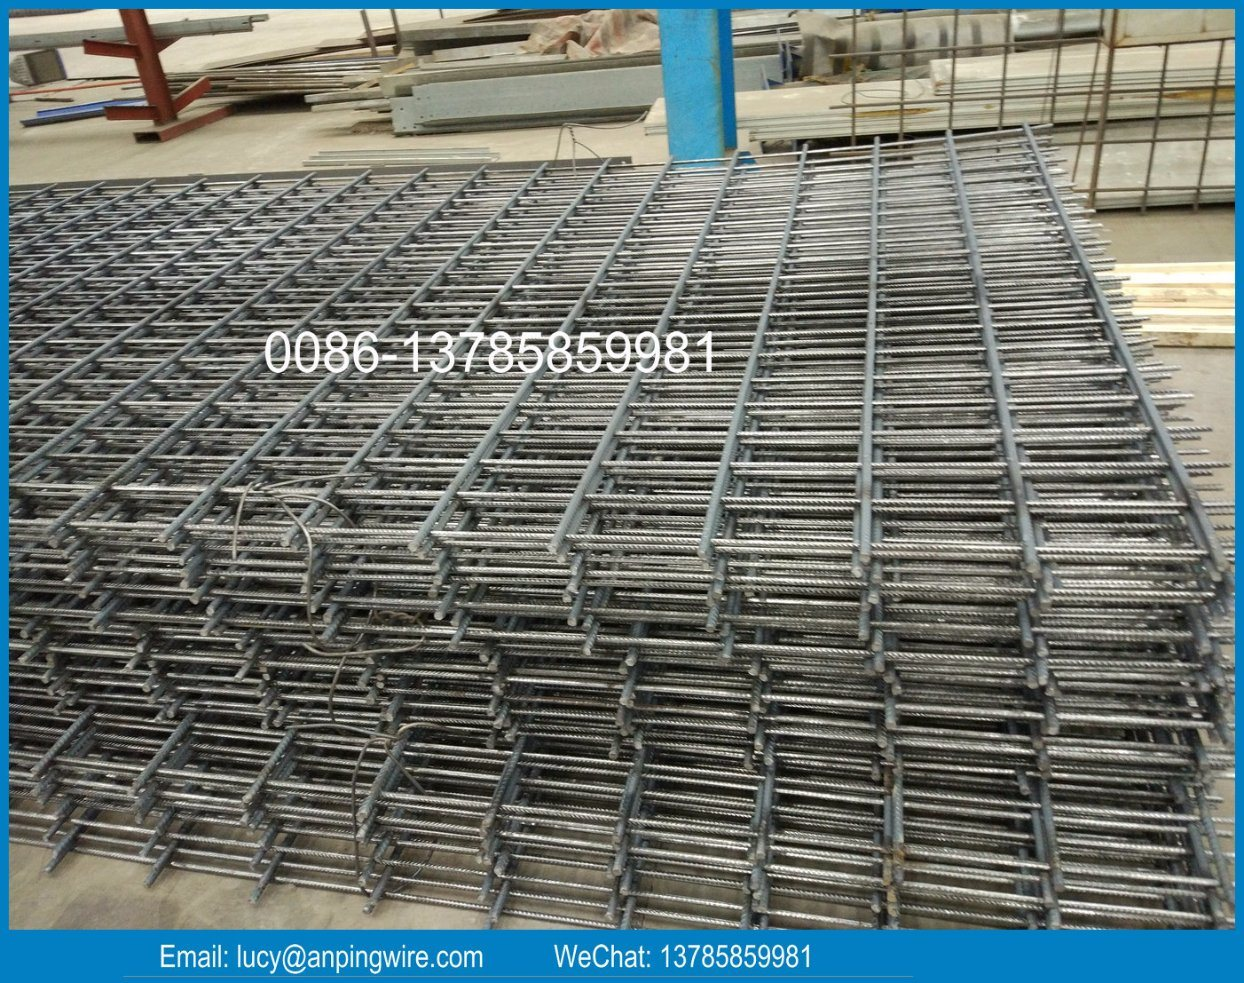 China Concrete Reinforcement Construction Welded Wire Mesh Factory ...